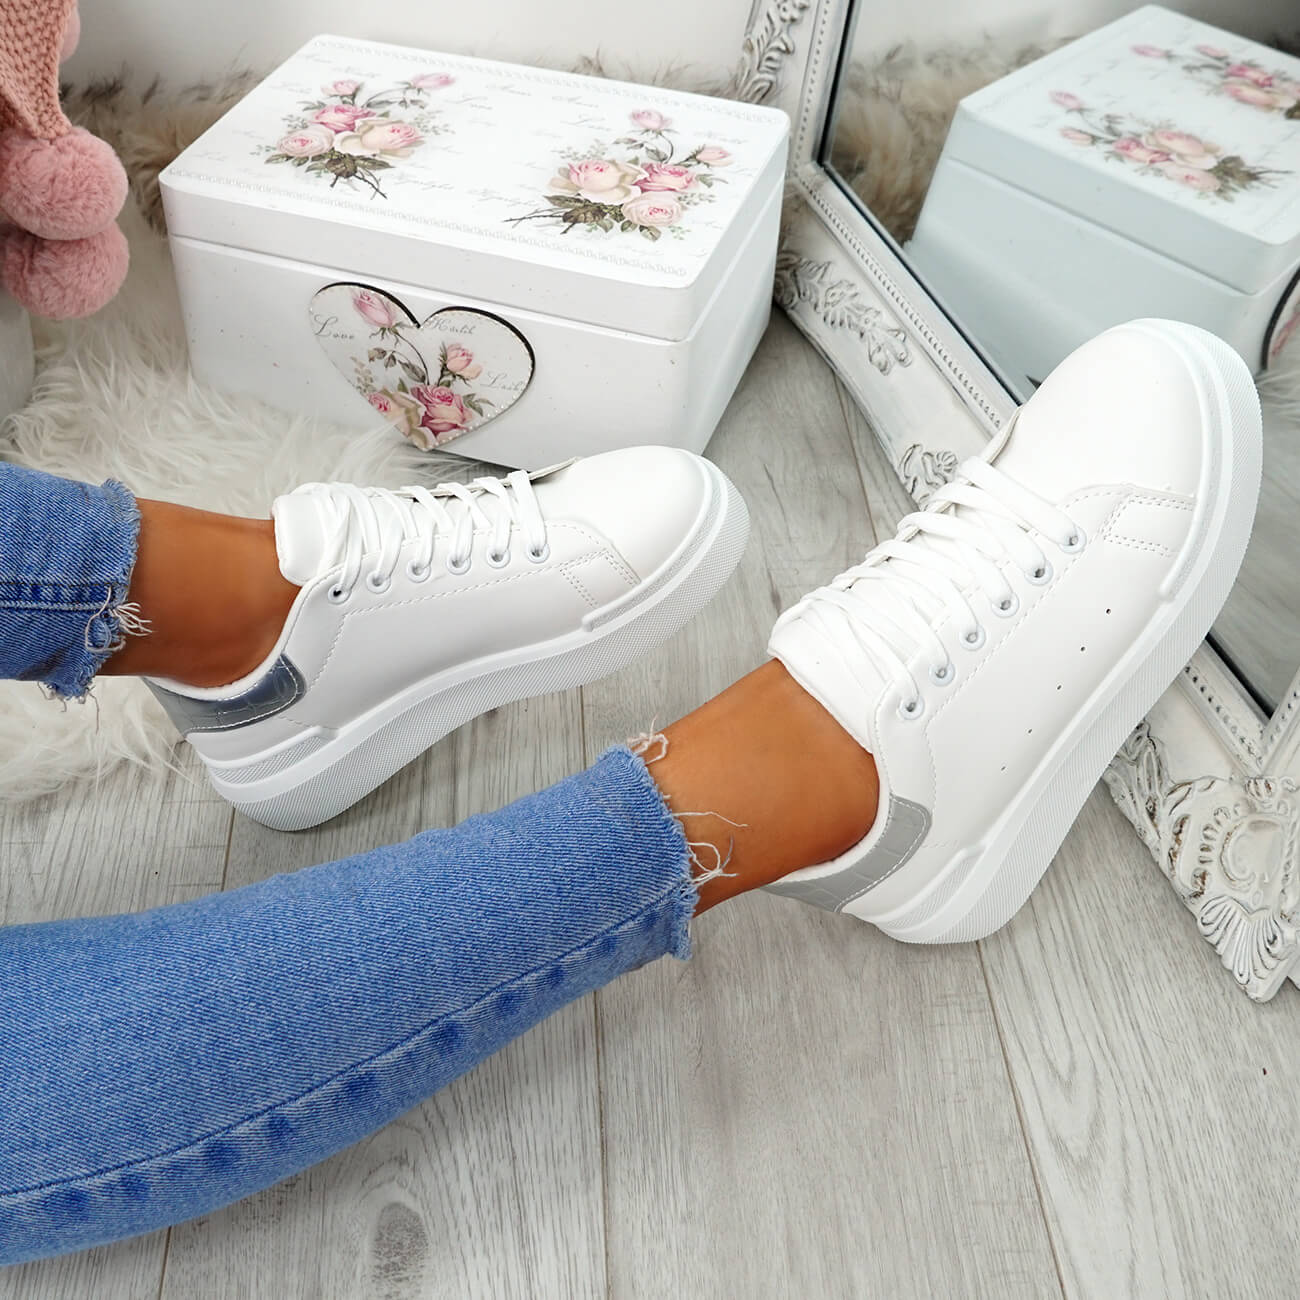 WOMENS-LADIES-LACE-UP-PLIMSOLL-SNEAKERS-CROC-SNAKE-TRAINERS-CASUAL-SHOES-SIZE thumbnail 69